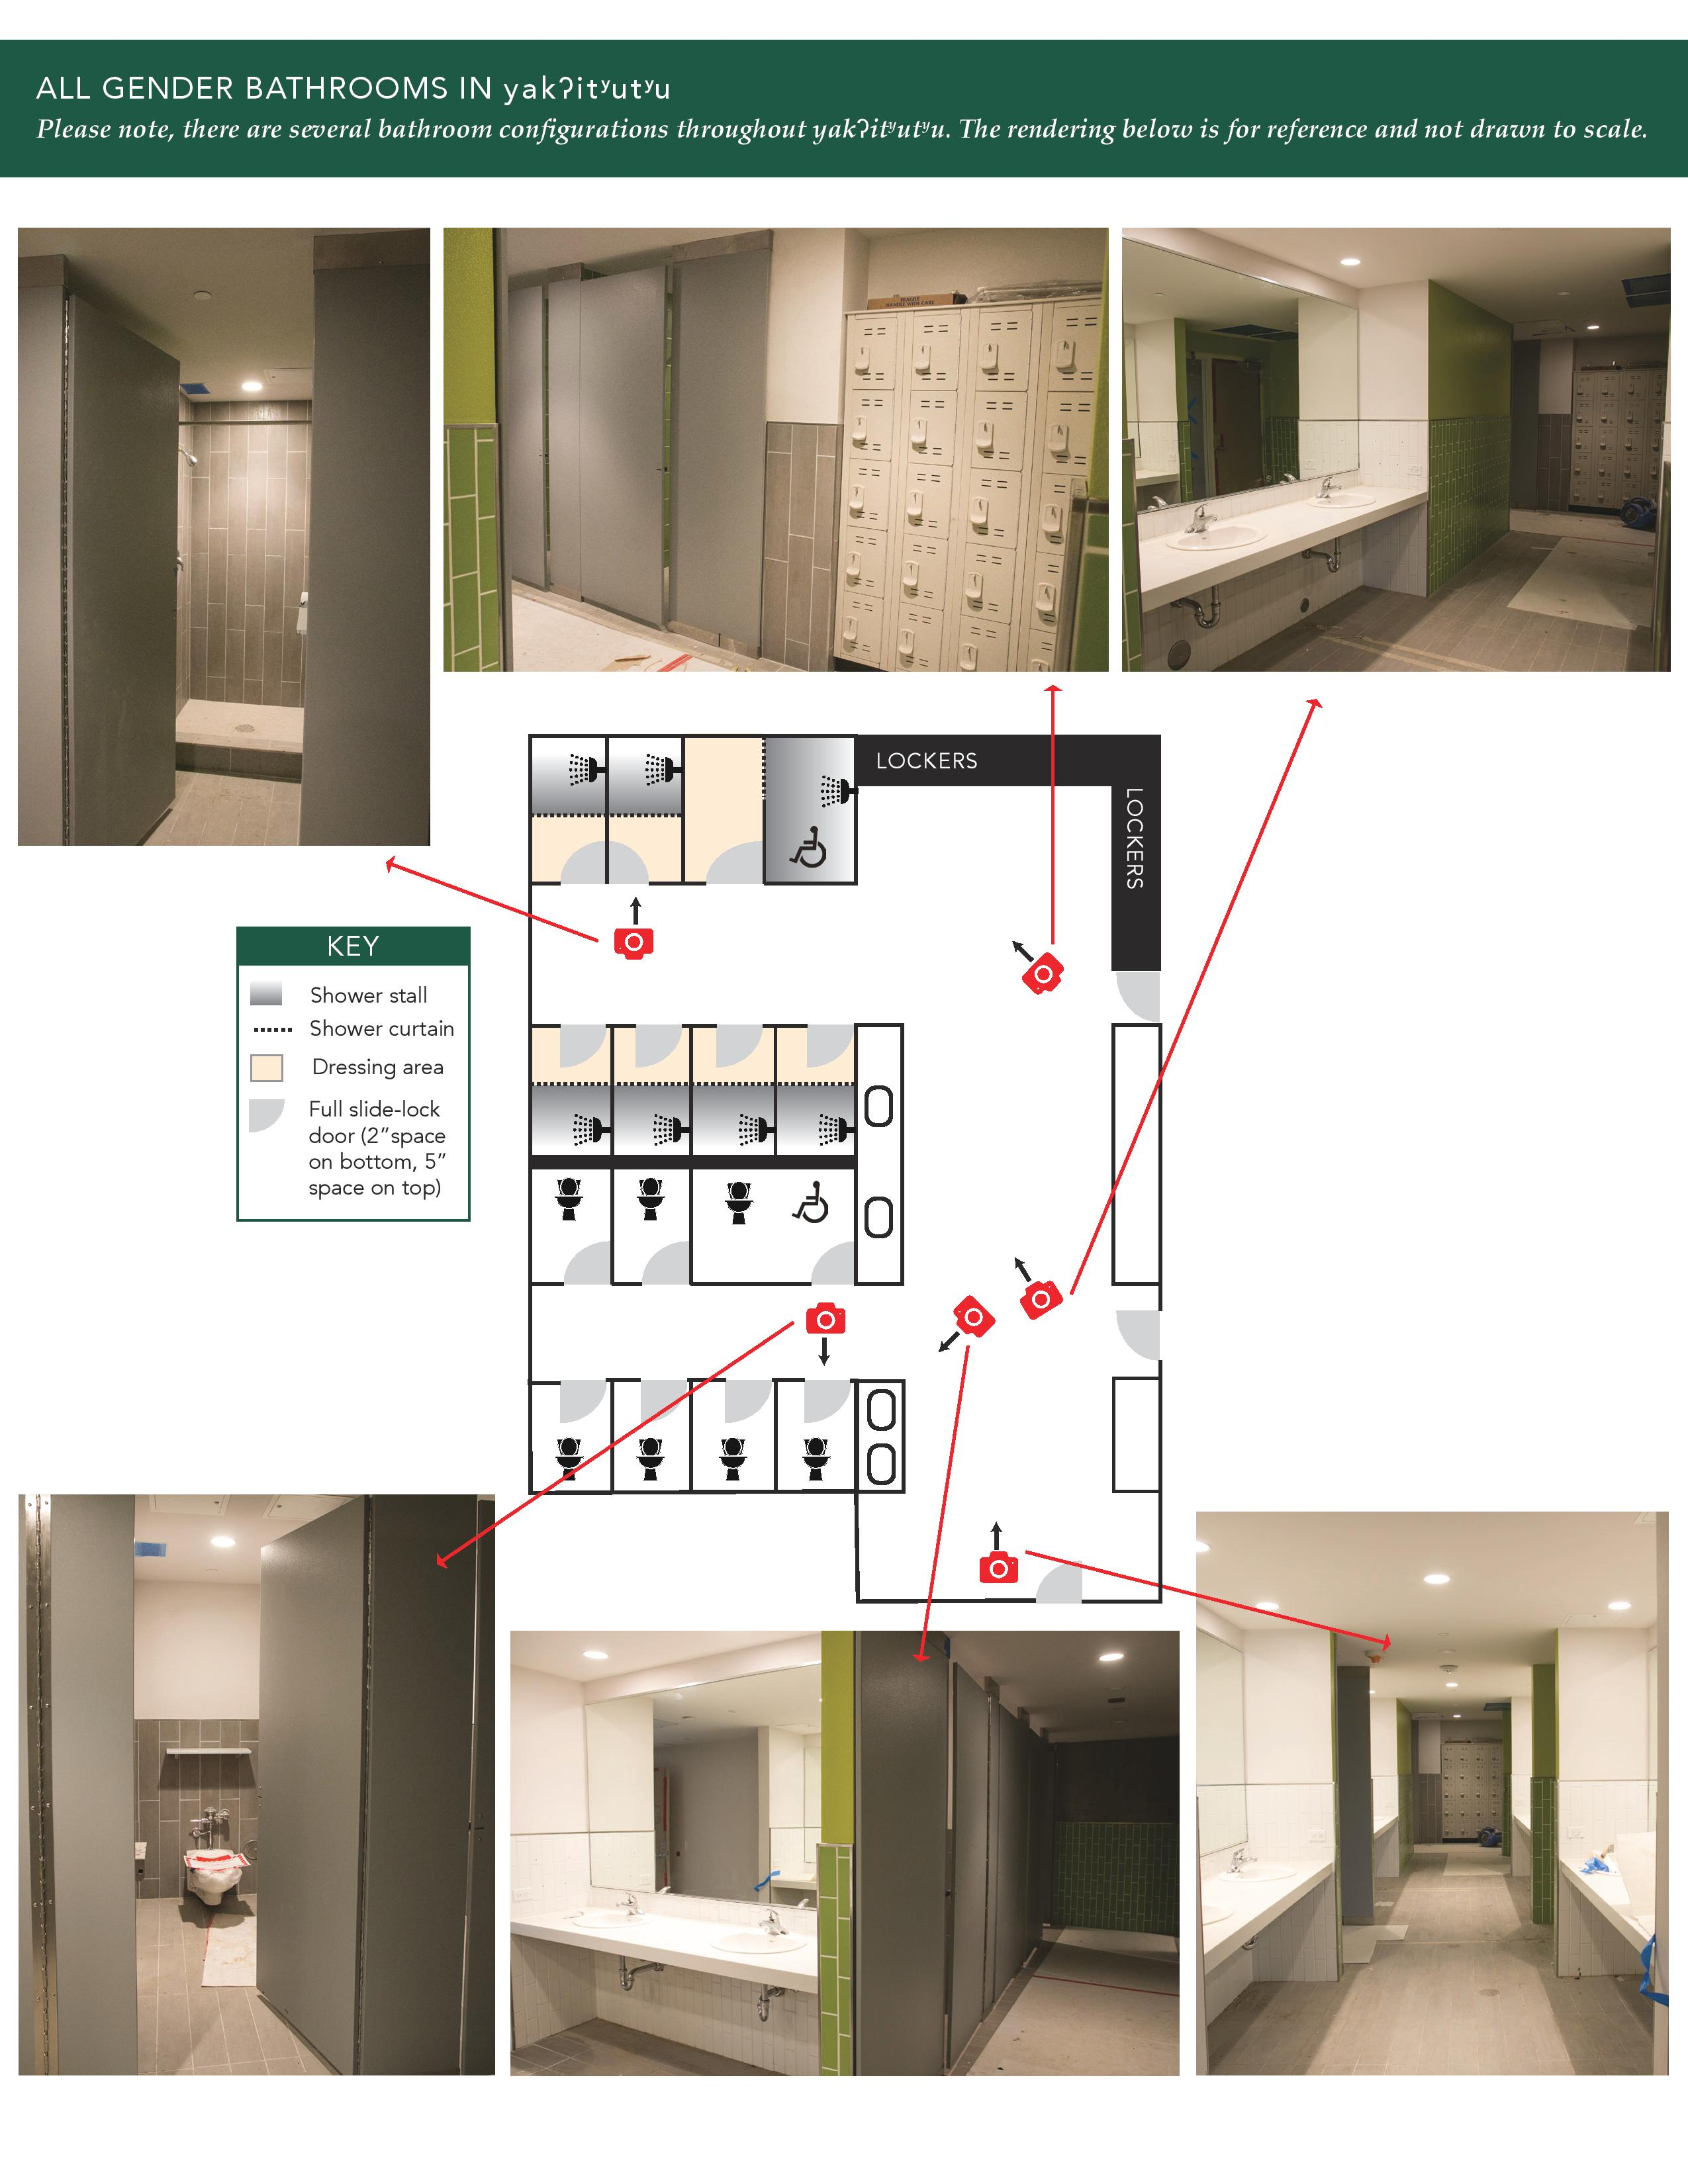 yakʔitʸutʸu bathrooms rendering with view of shower stalls and bathroom stalls